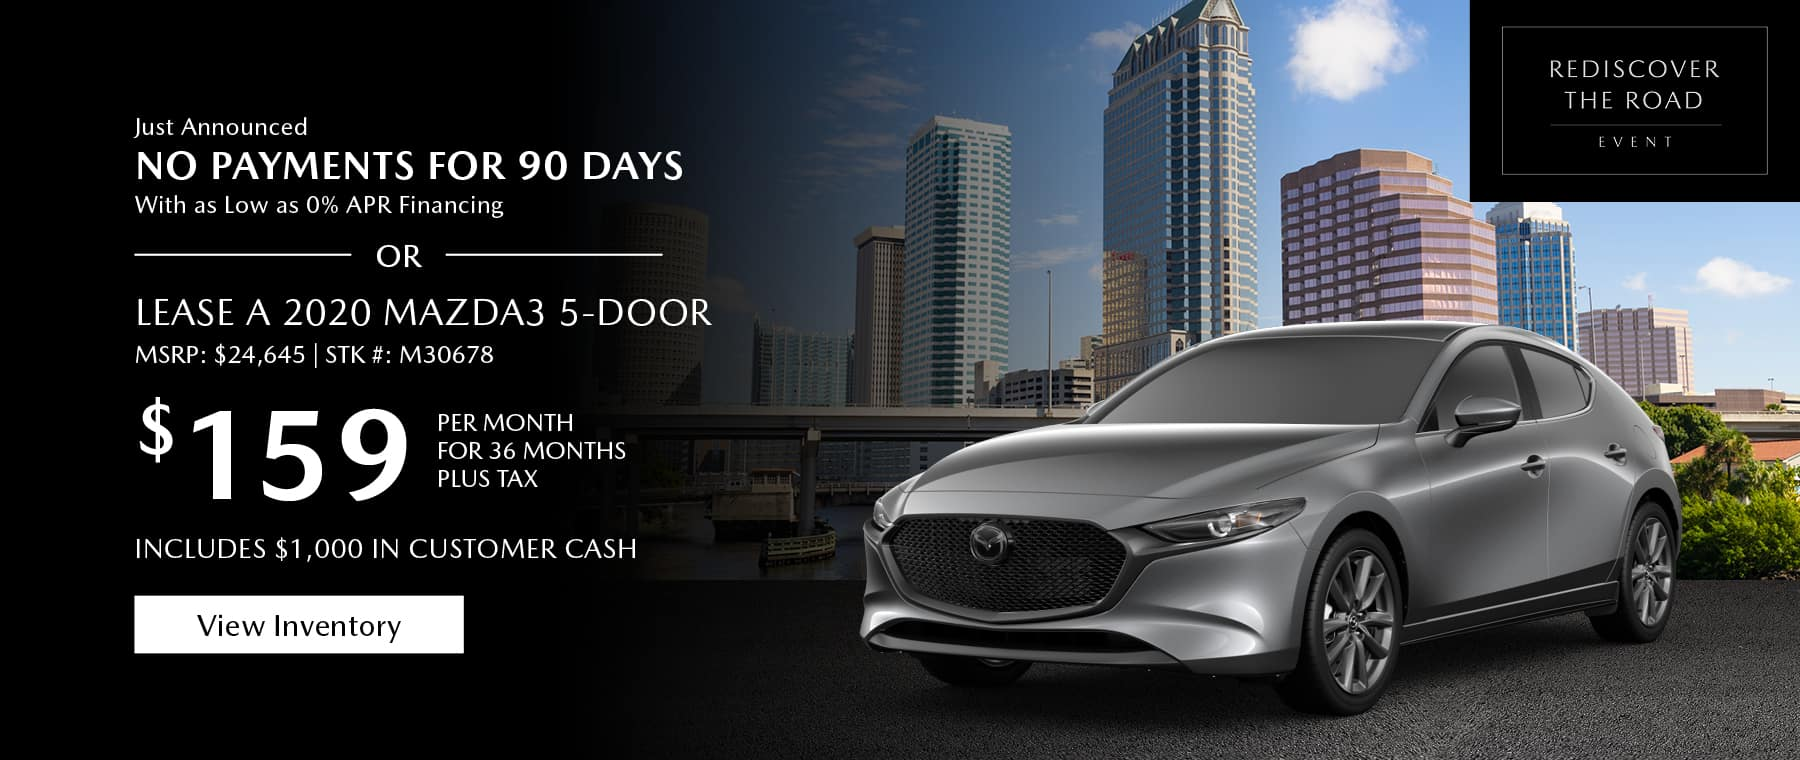 Just Announced, No payments for 90 days with as low as %0 APR financing, or lease the 2020 Mazda3 hatchback for $159 per month, plus tax for 36 months. Includes $1,000 in customer cash. Click or tap here to view our inventory.